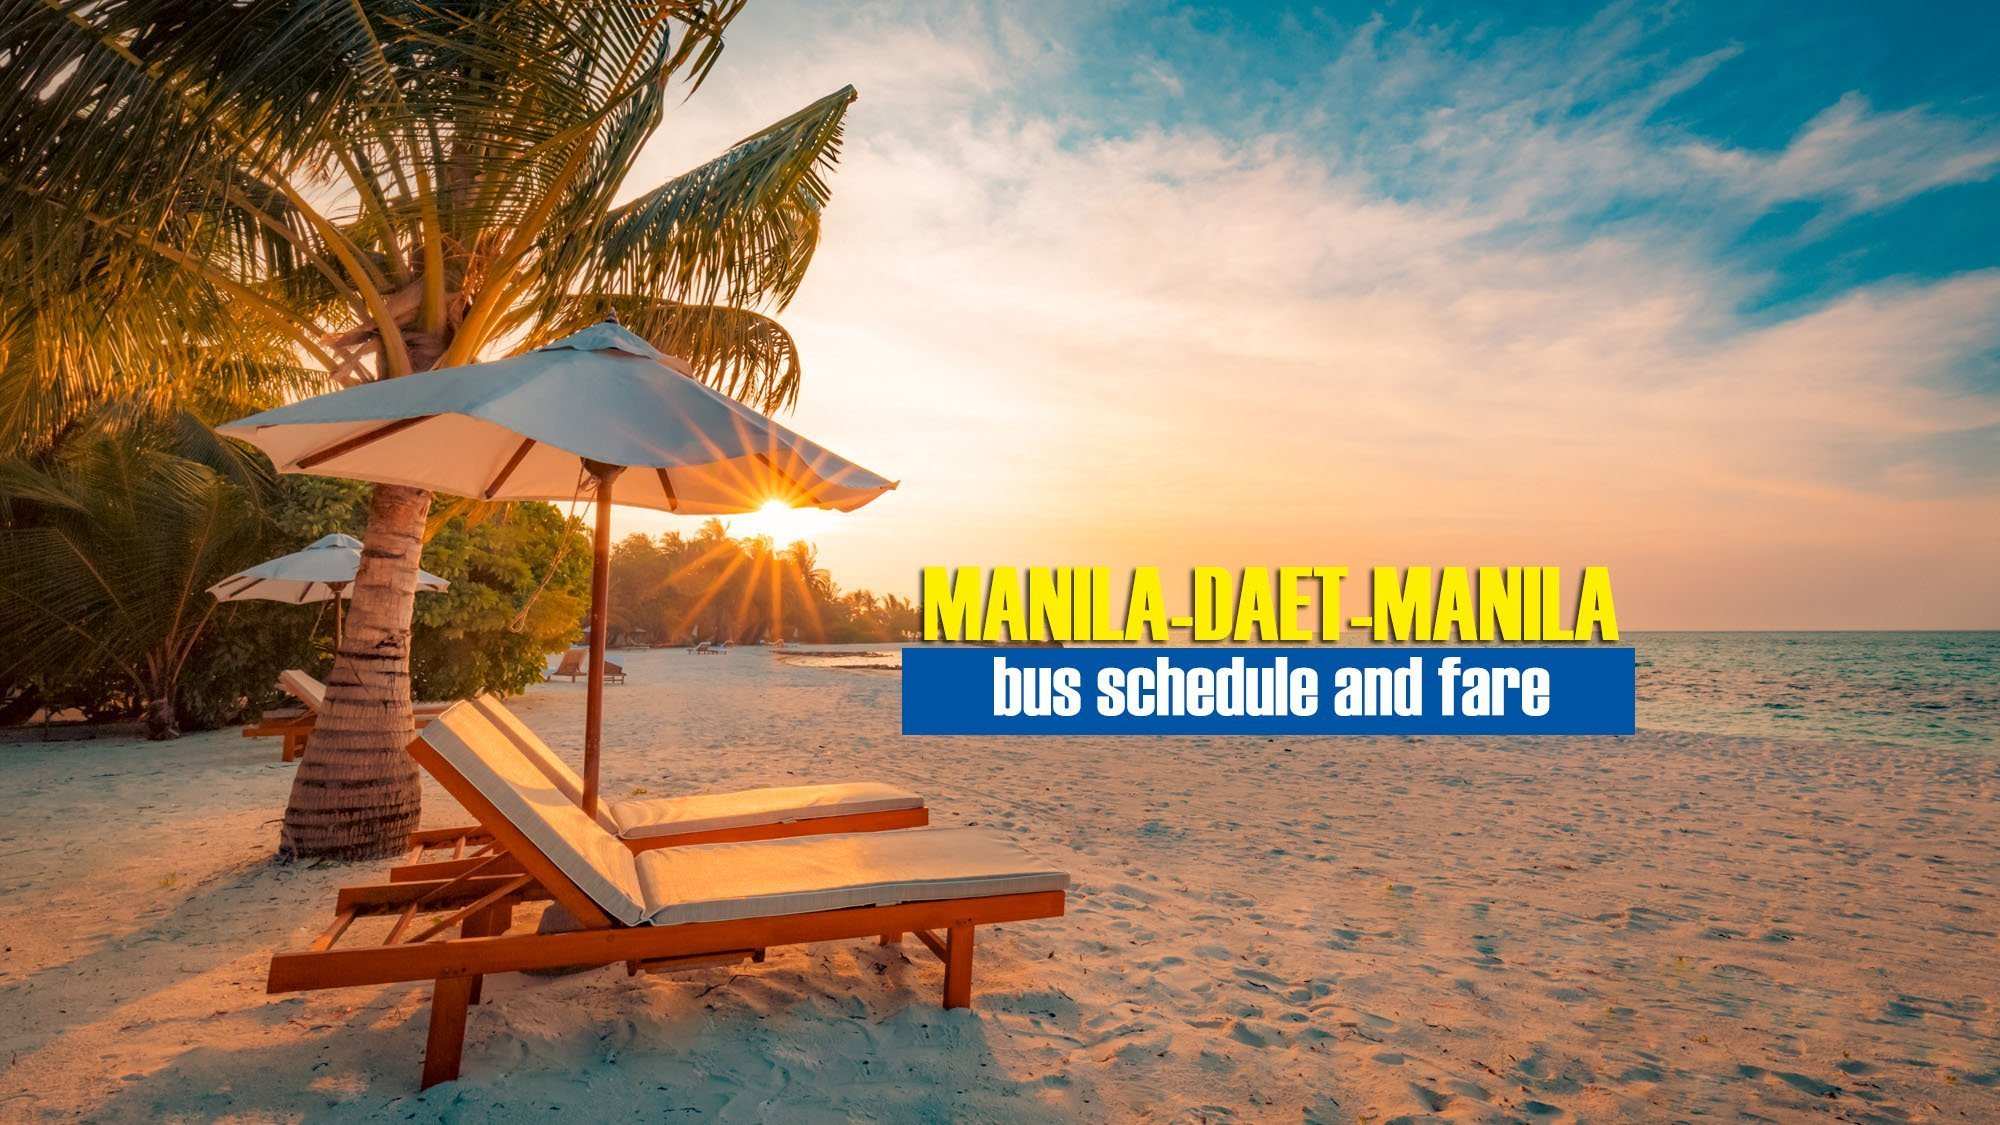 Manila to Daet: 2019 Bus Schedule and Fare